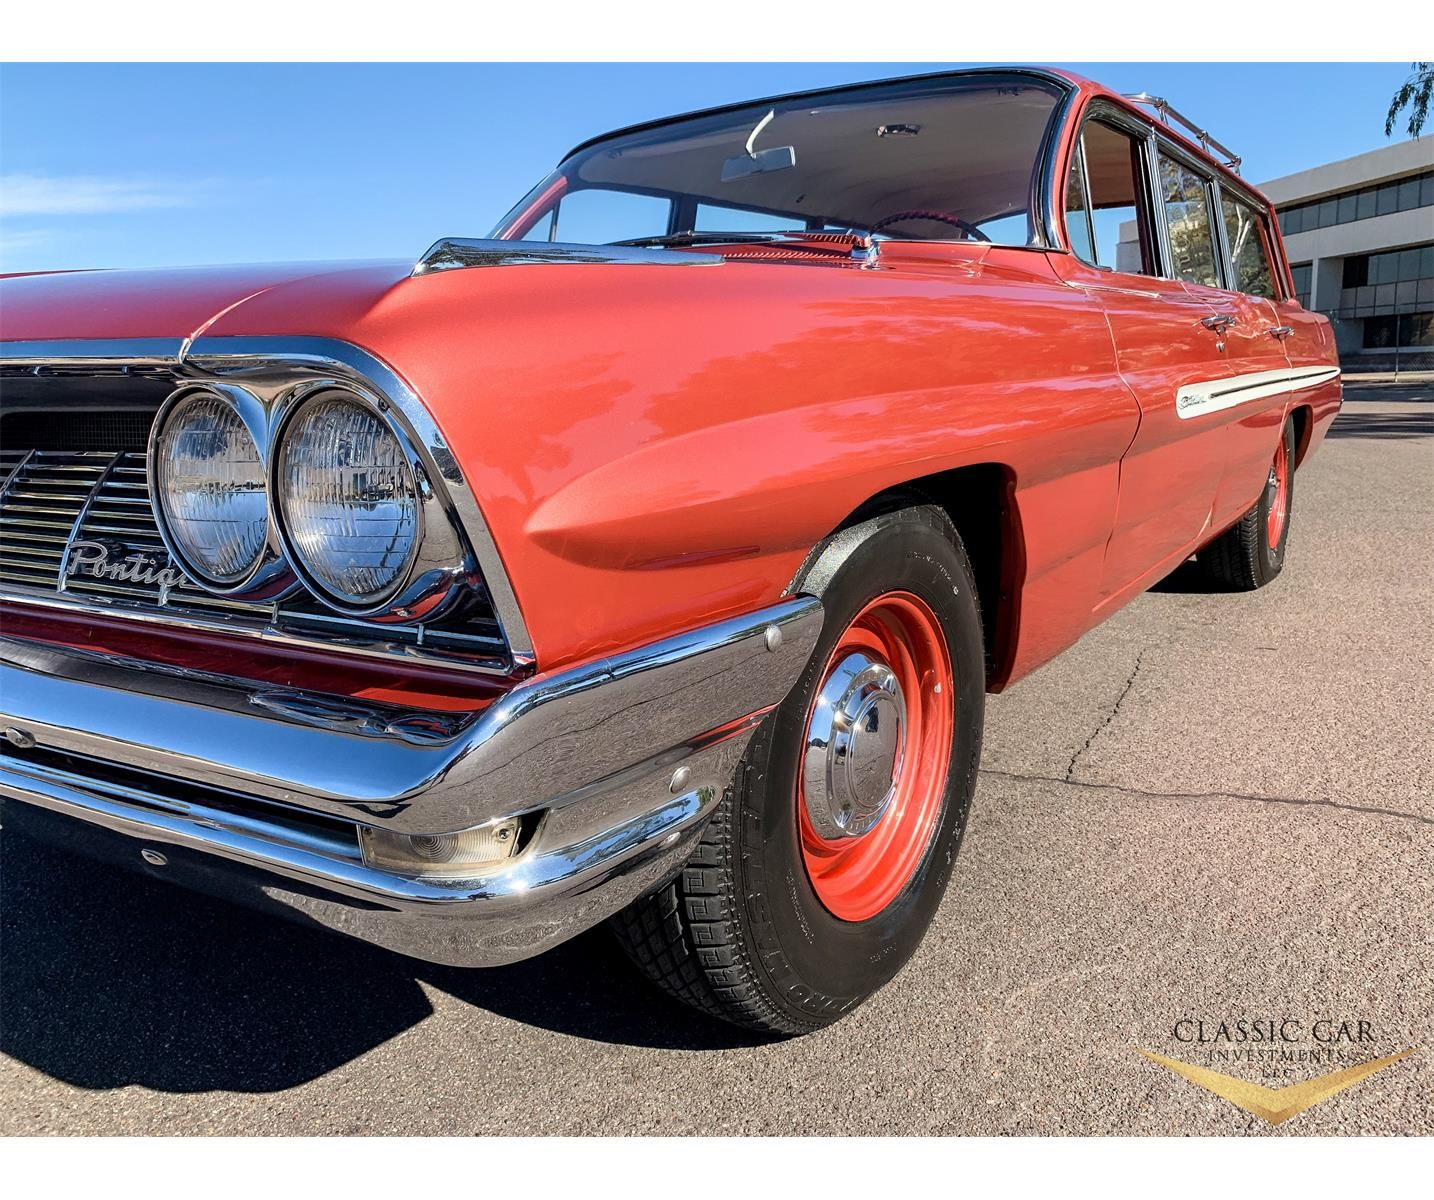 Large Photo Of 61 Catalina P4yy 1961 Pontiac Catalina